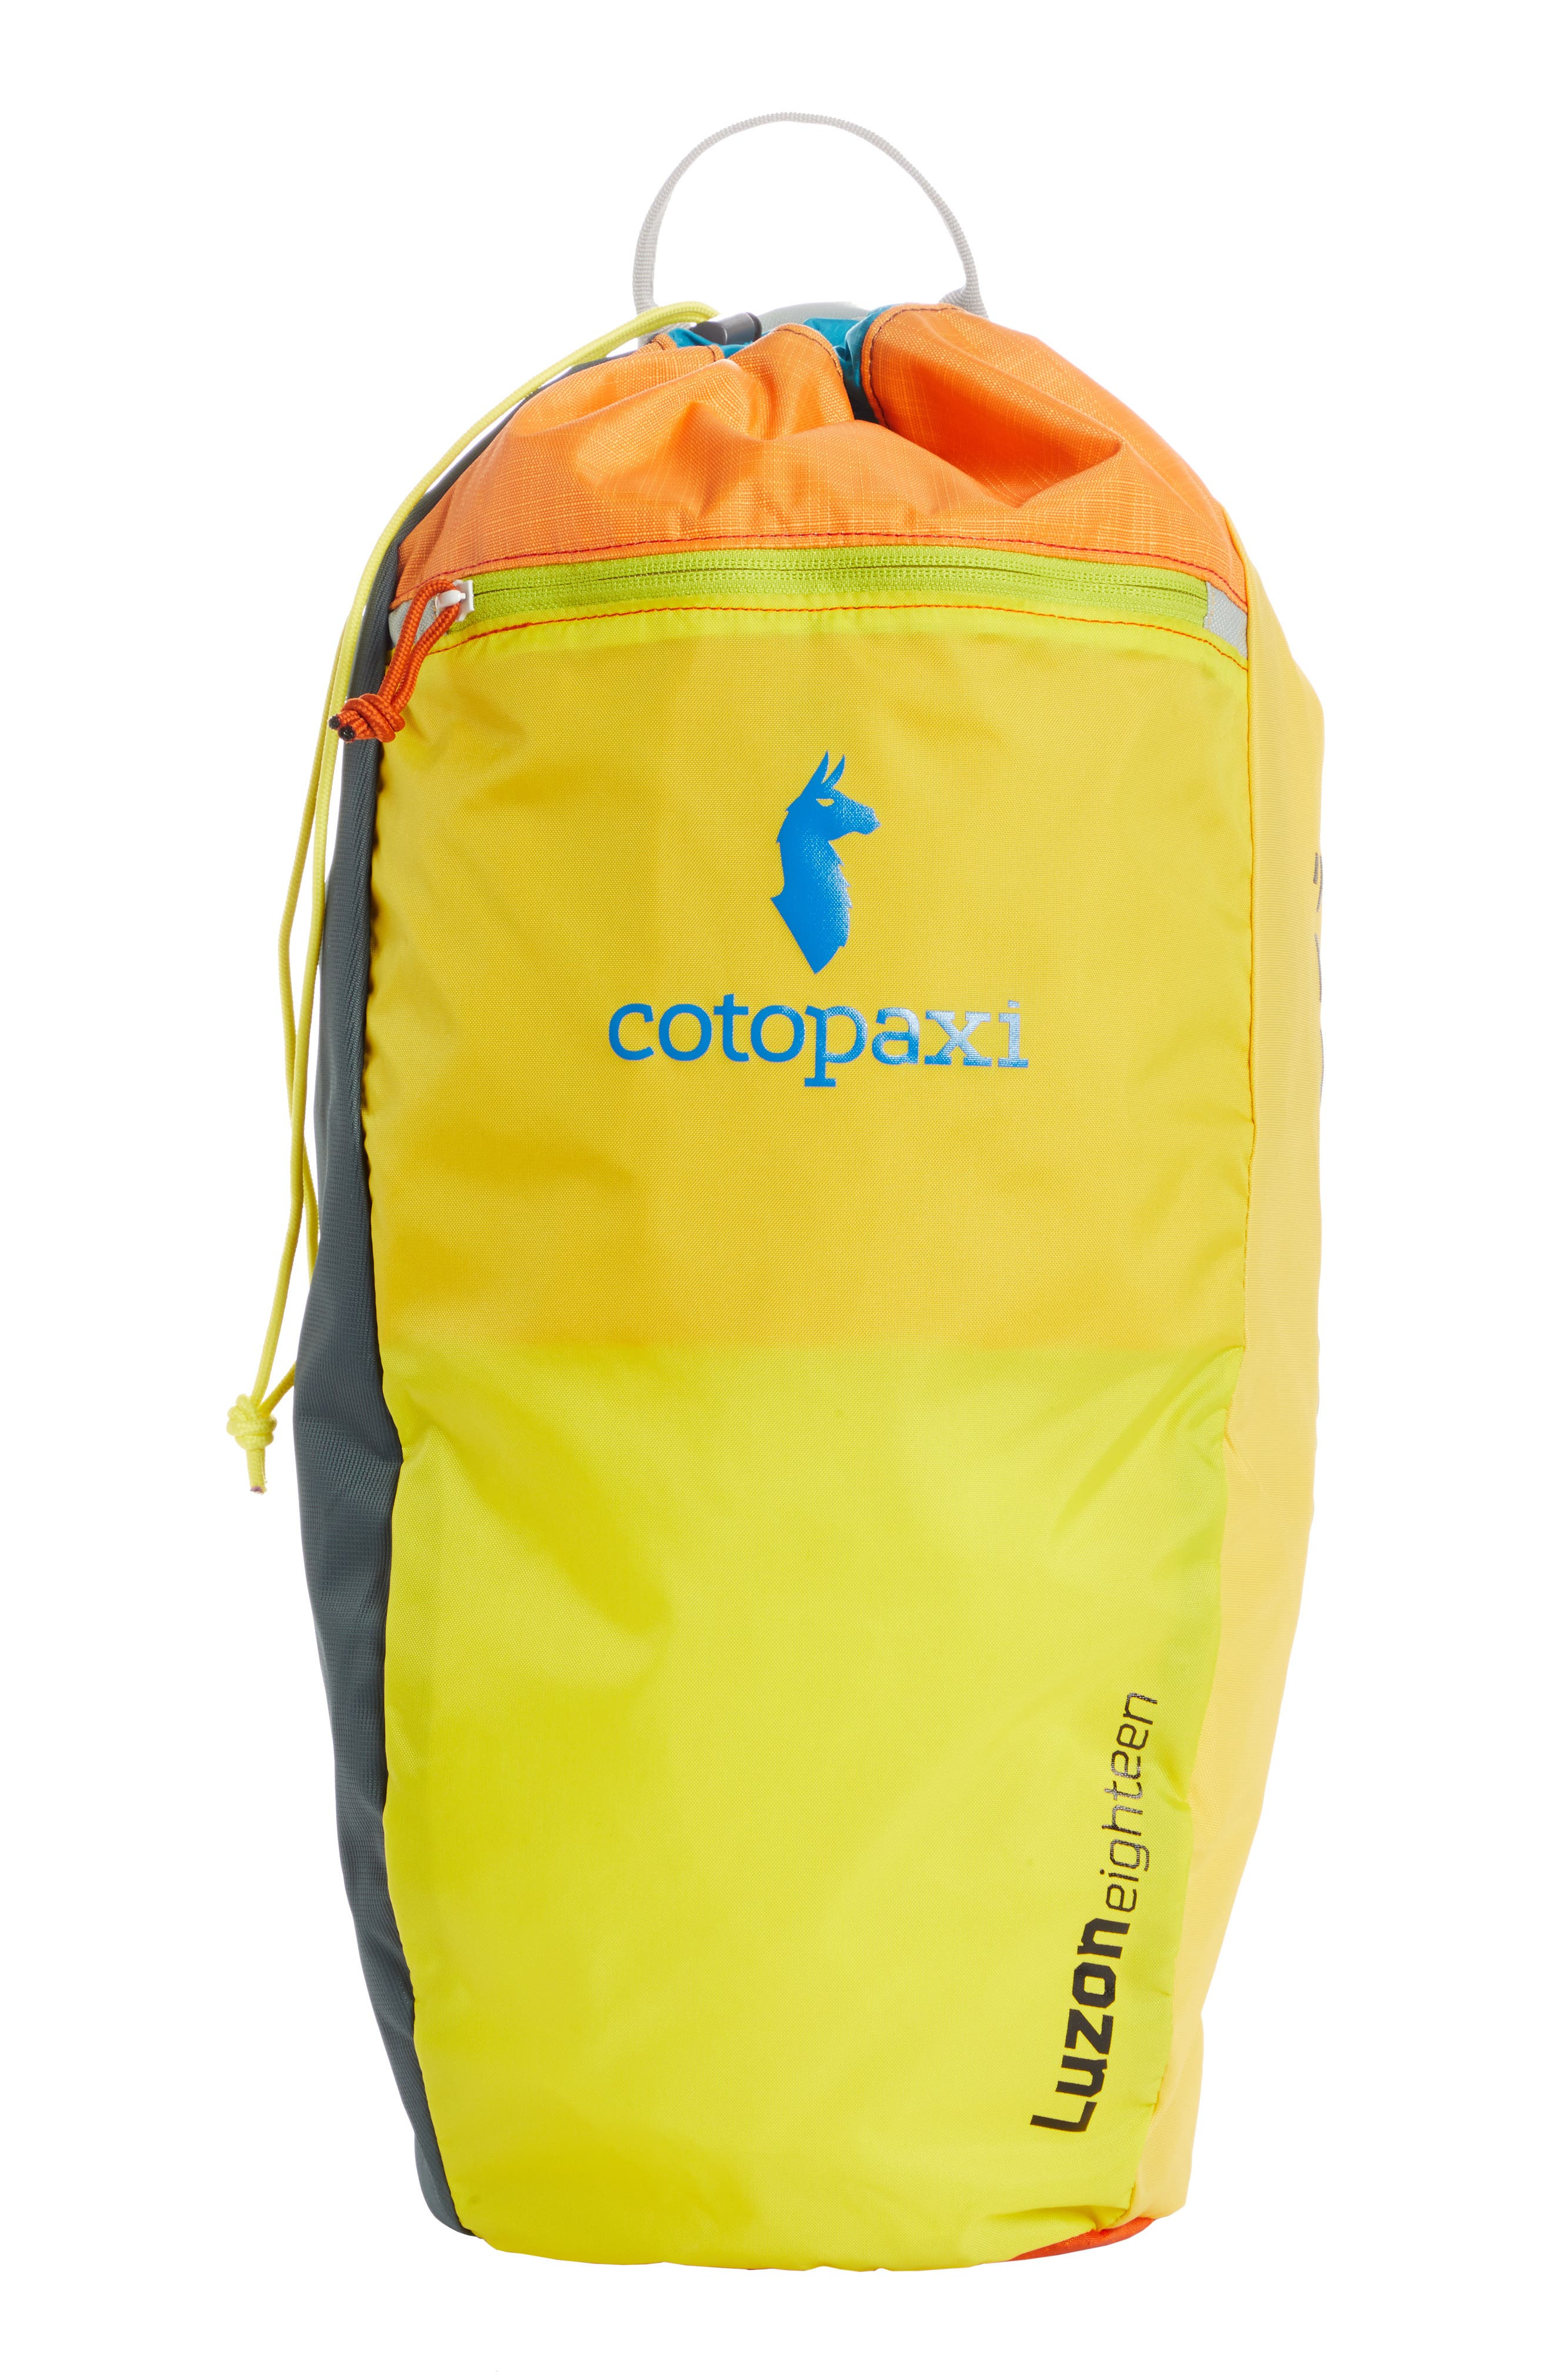 Cotopaxi Luzon 18L Daypack - Red